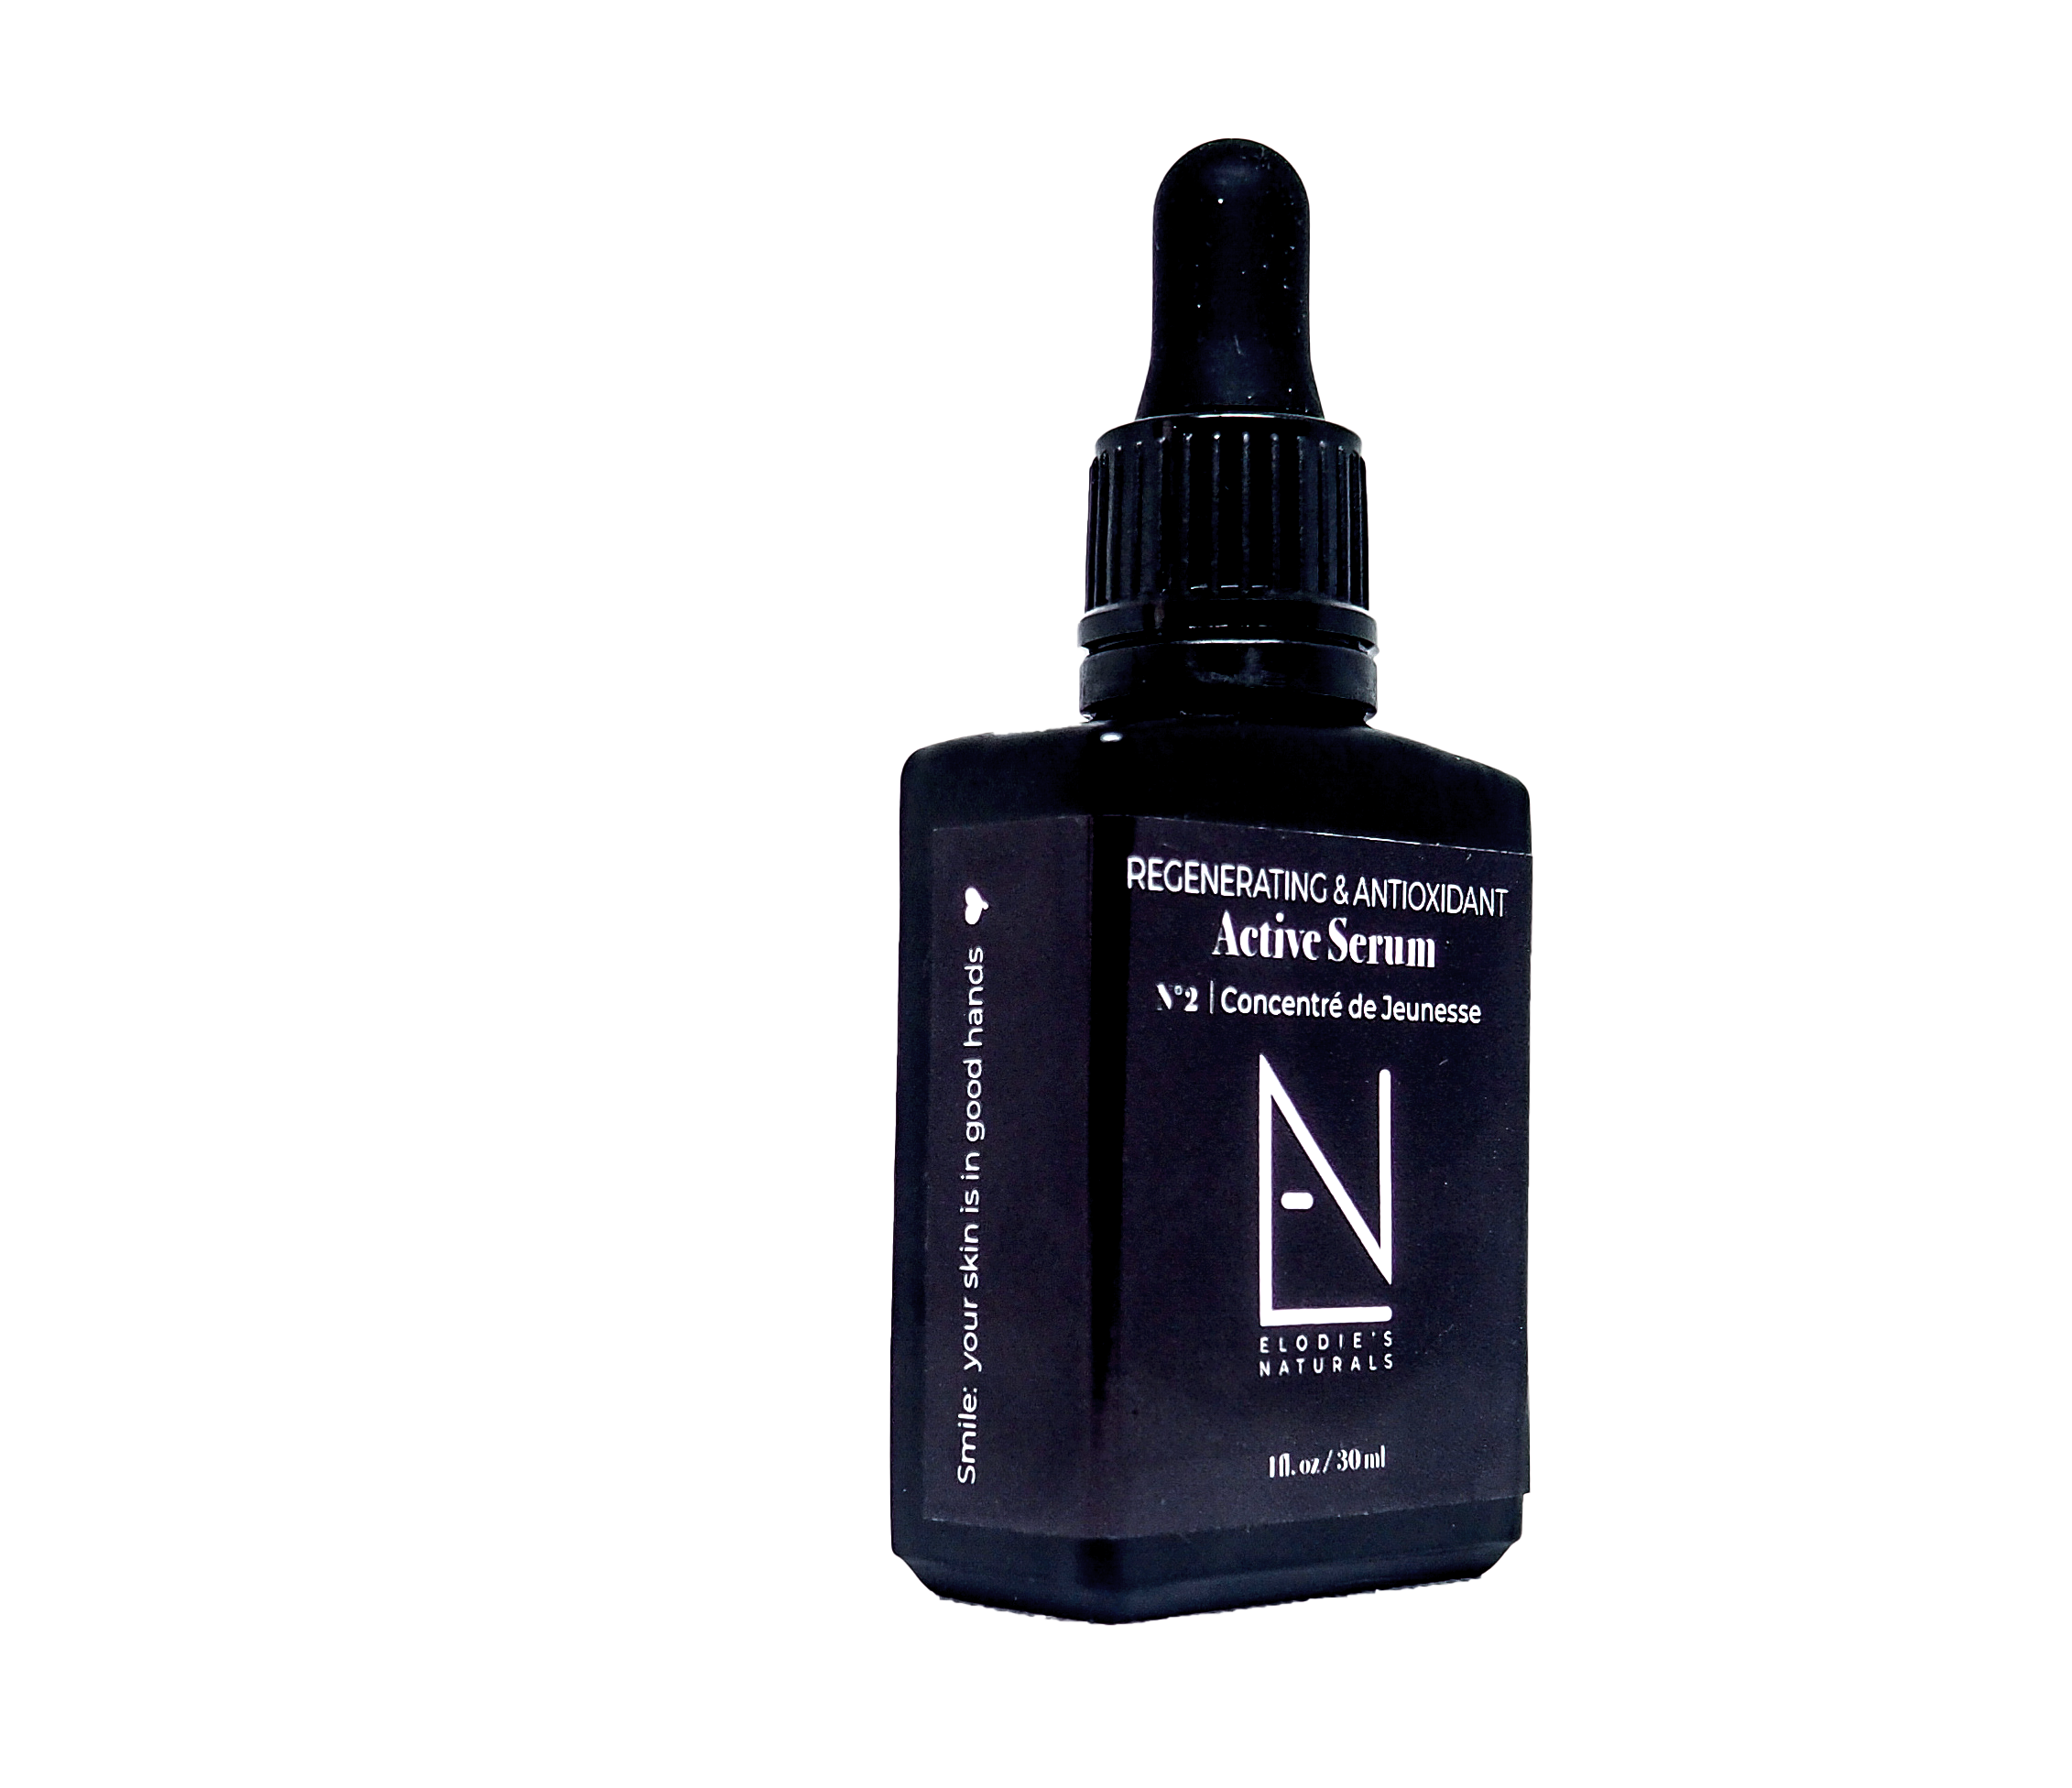 Elodies Naturals, French Serums anti-aging